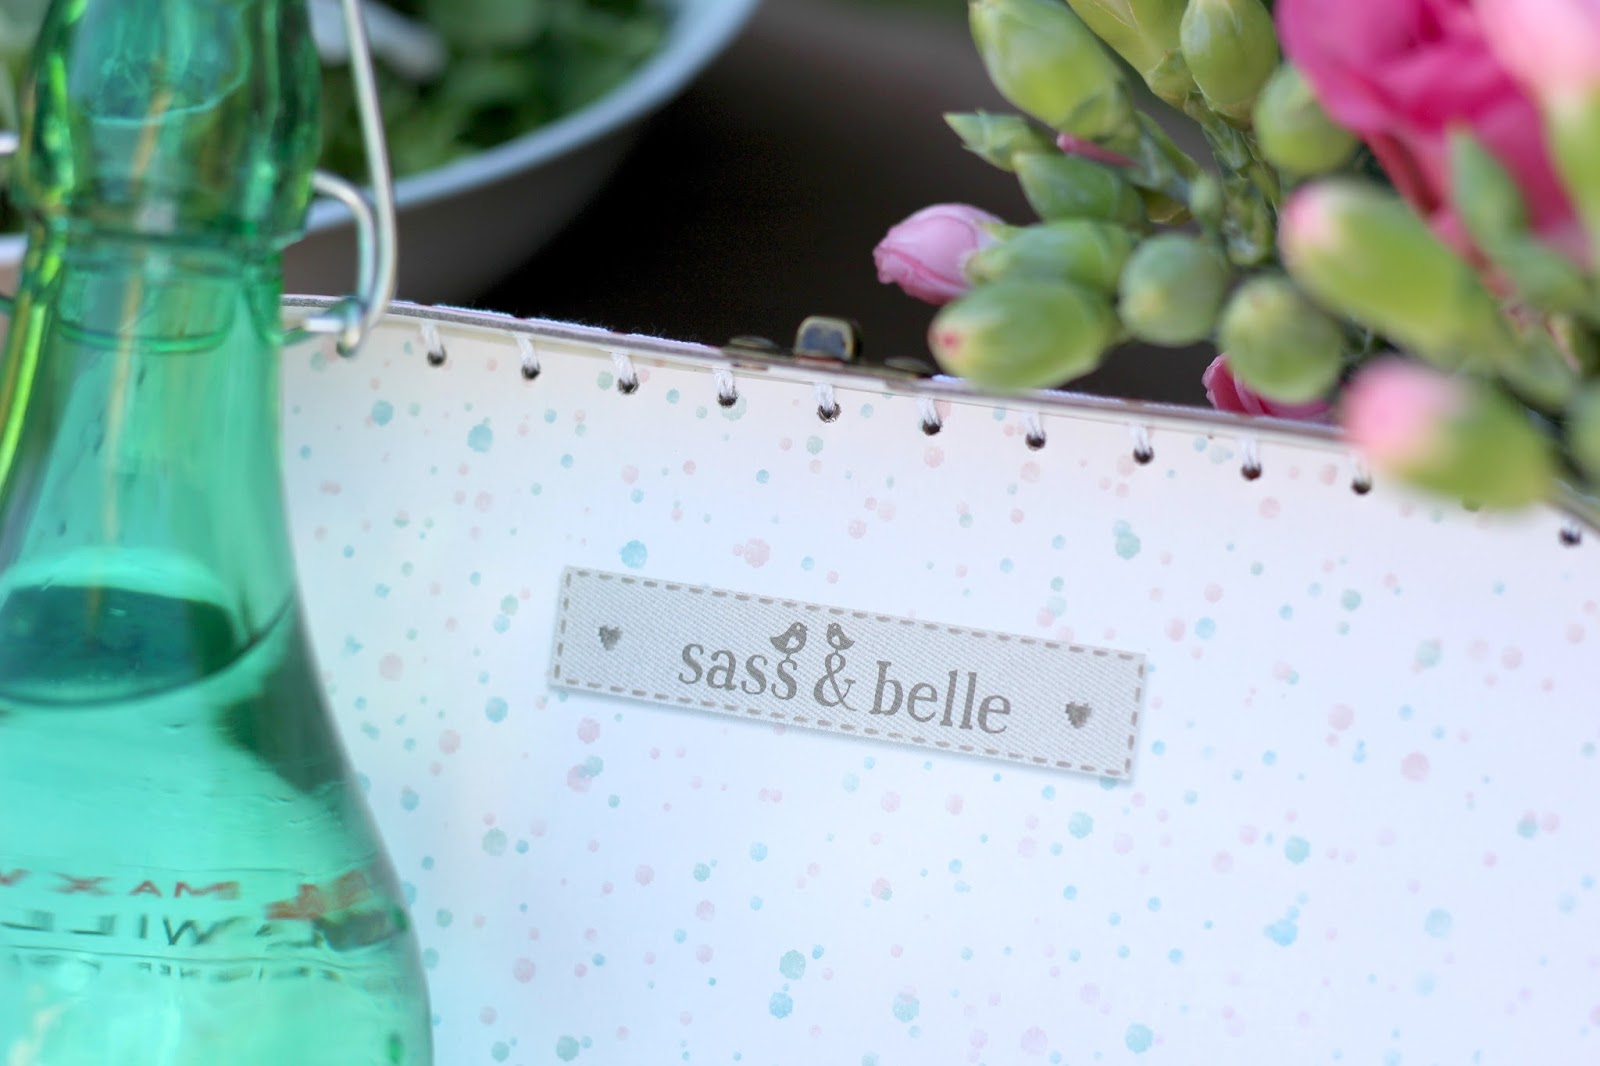 Sass & Belle pastel coloured suitcases